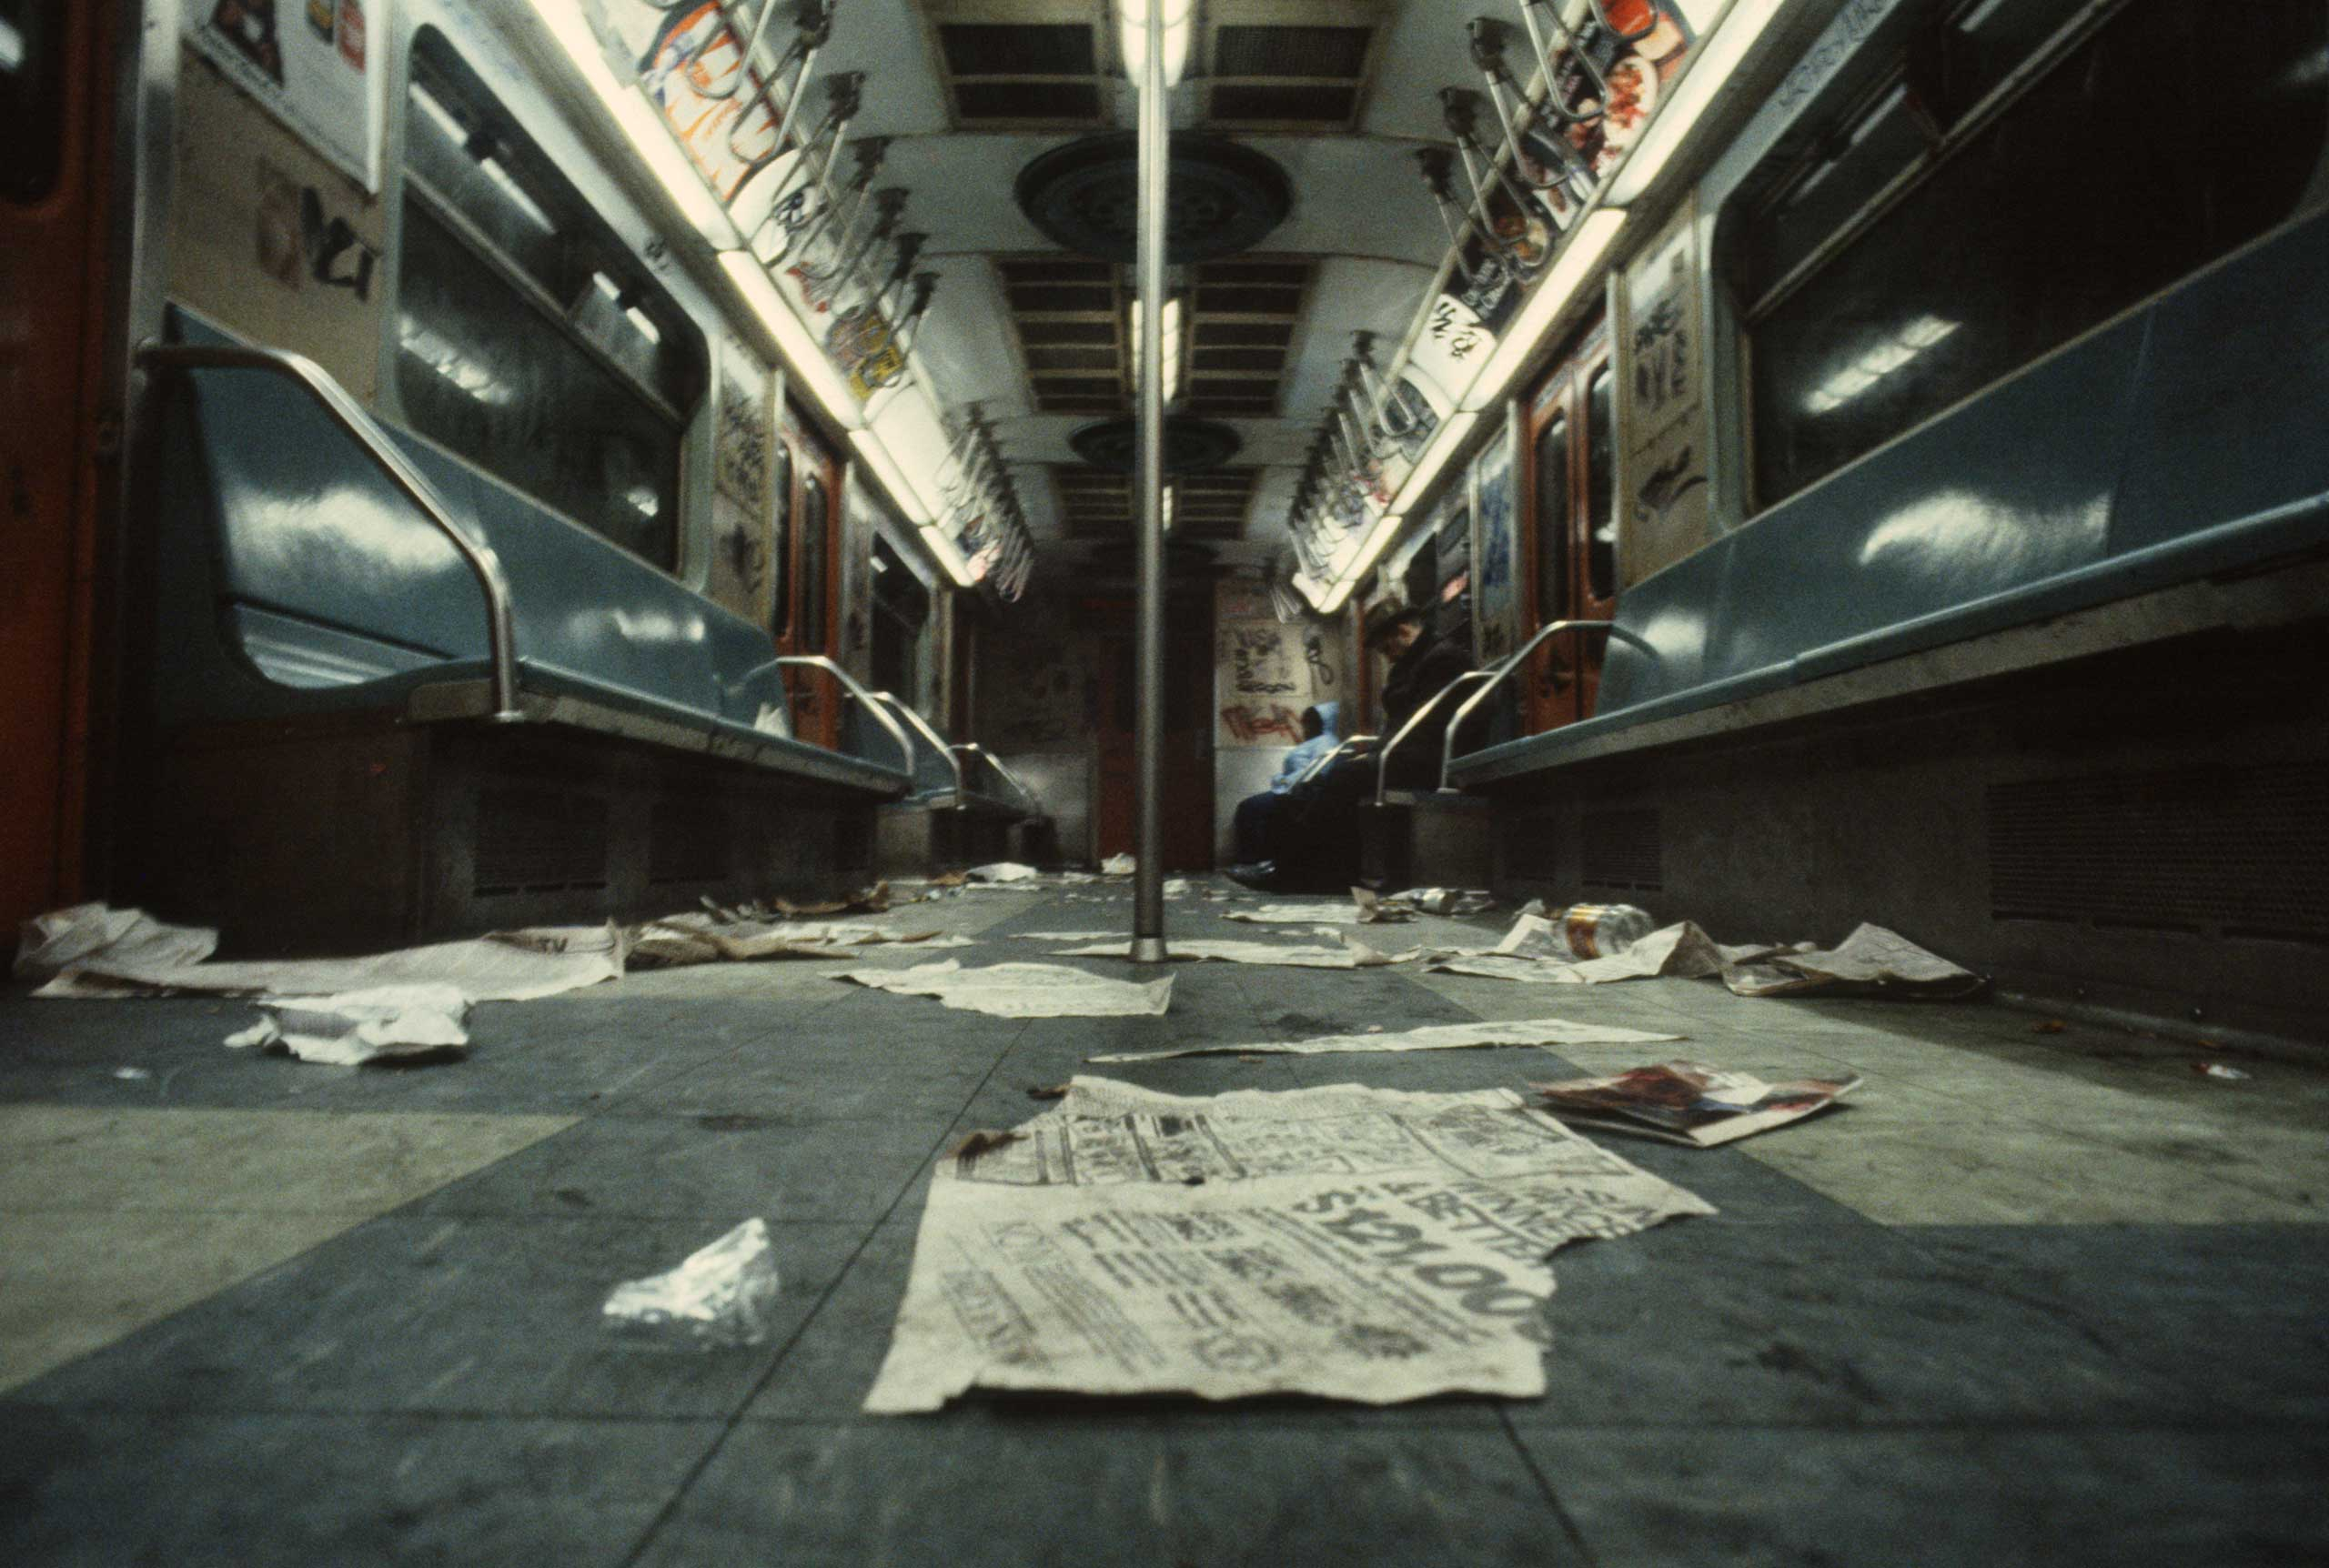 Discarded newspapers and trash on the floor of a subway car, 1981.